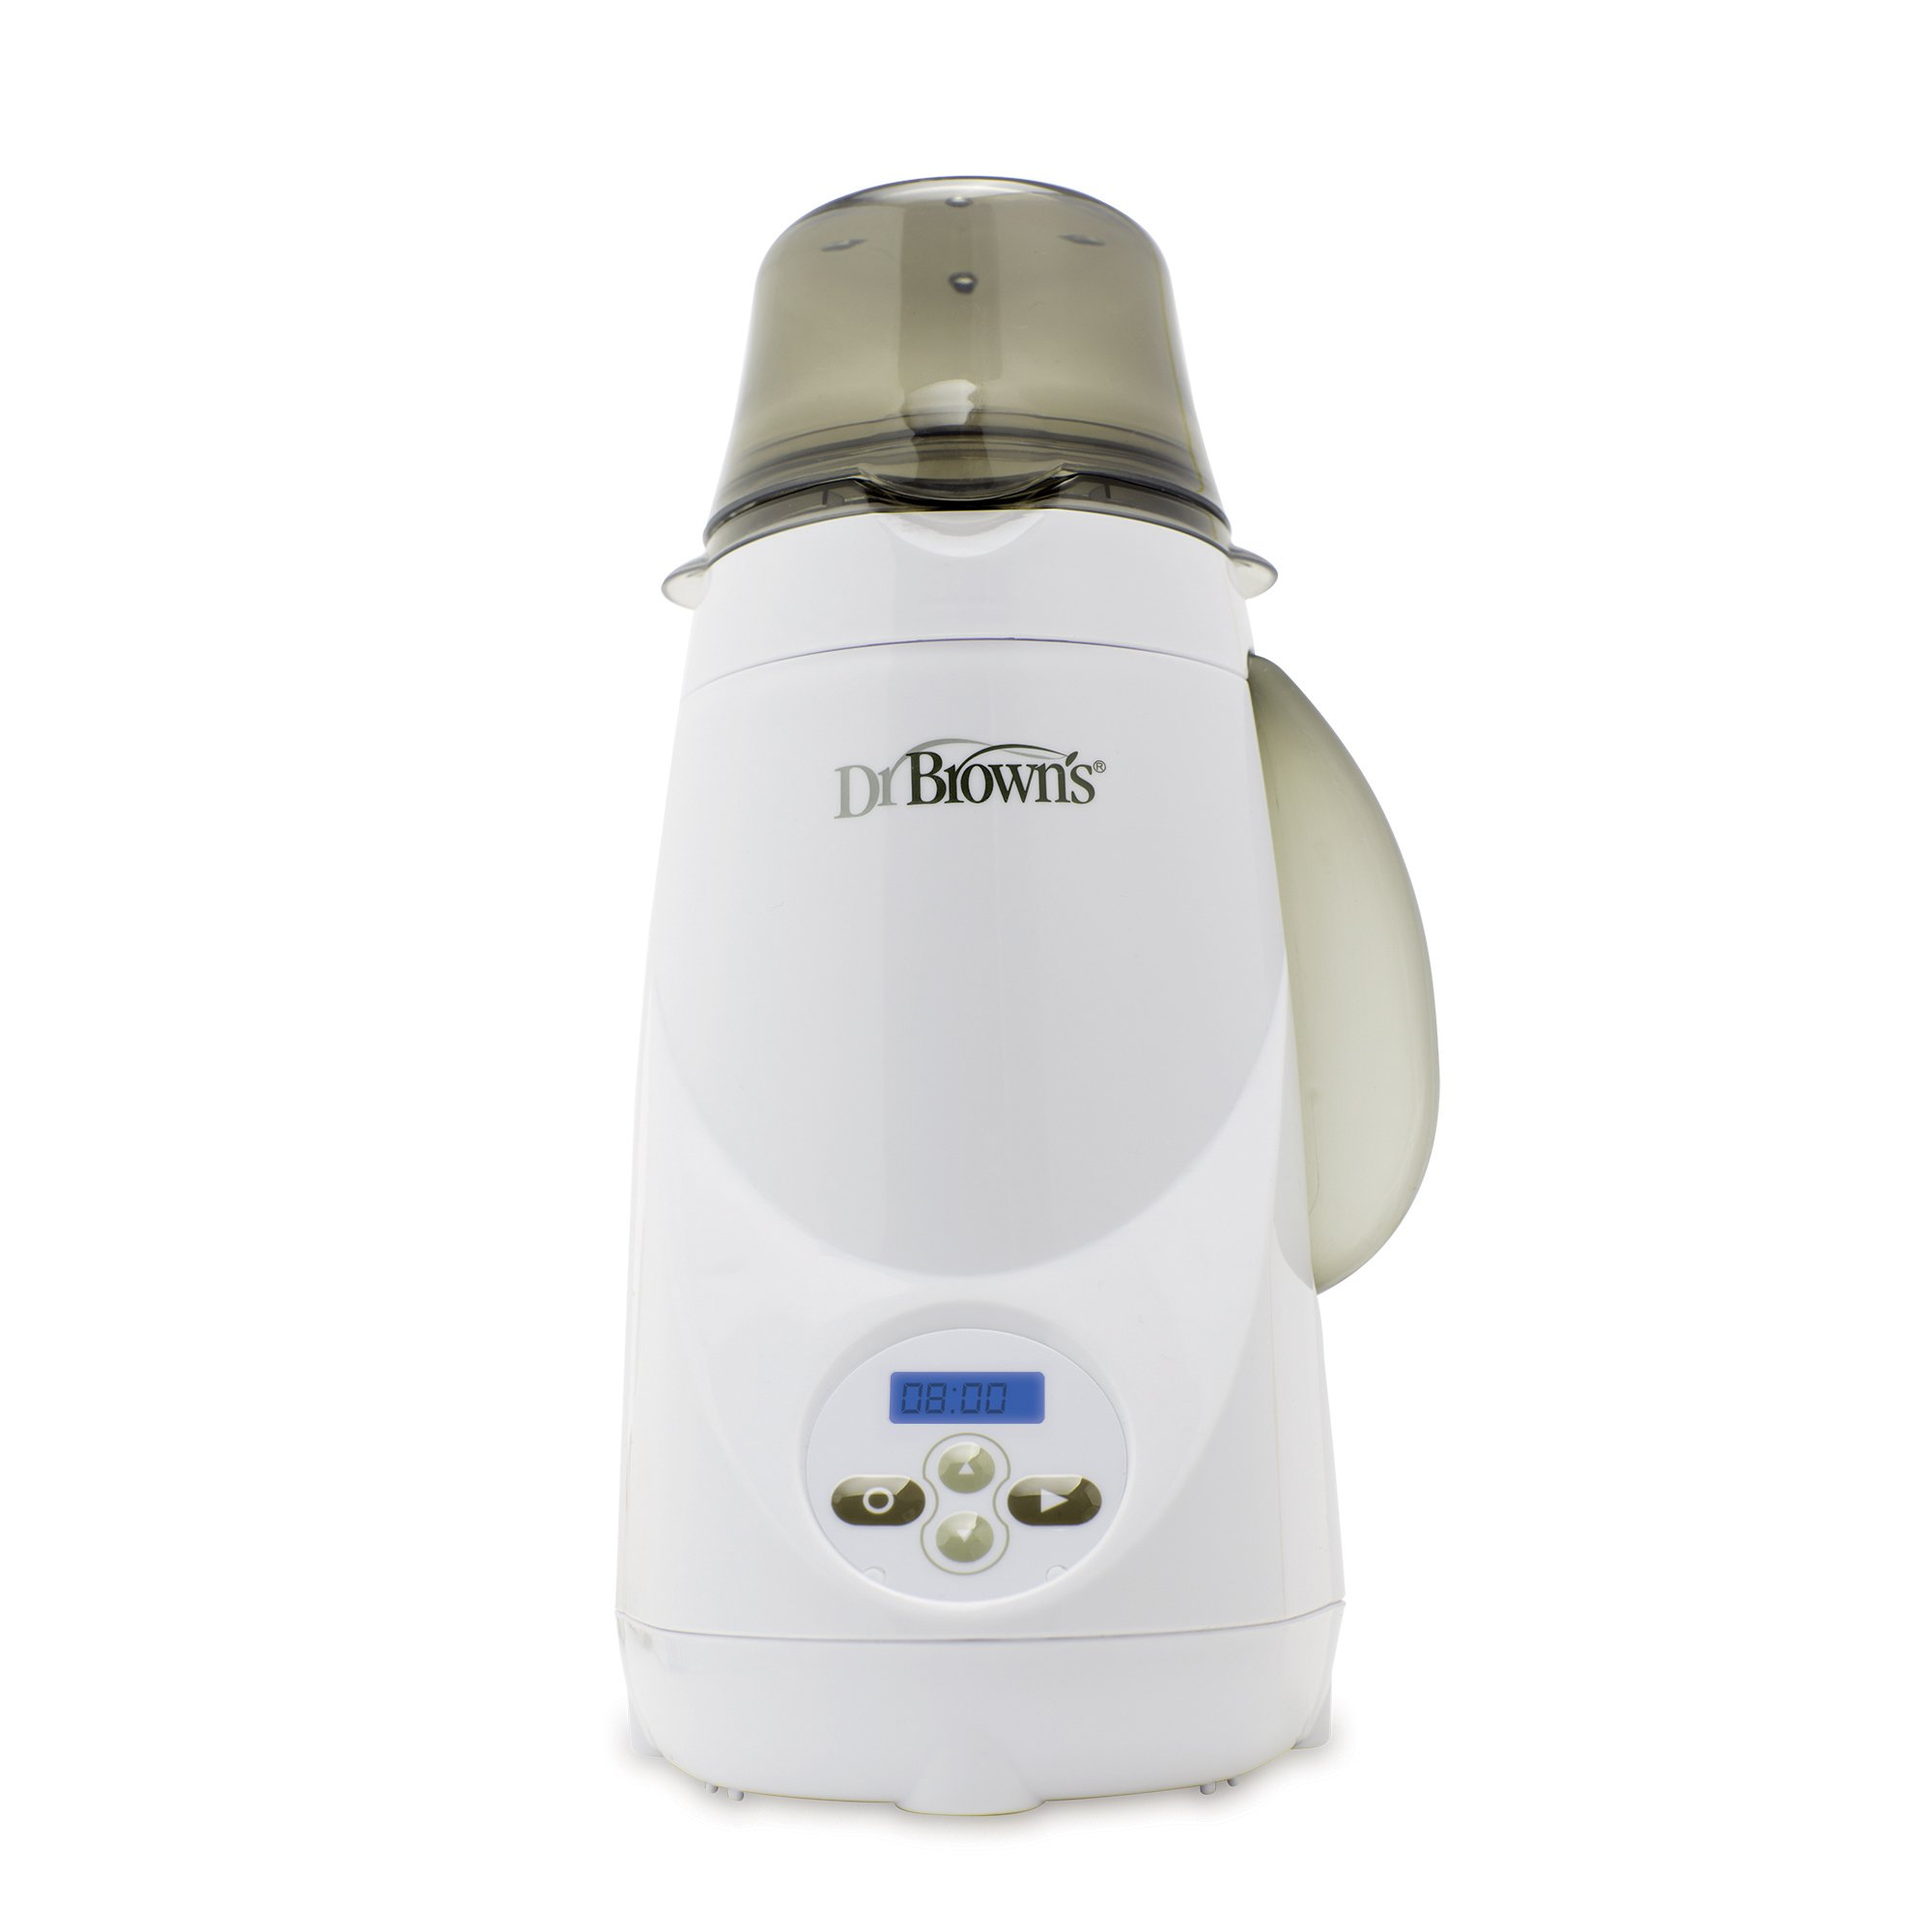 Dr. Brown's Deluxe Baby Bottle Warmer by Dr. Brown's